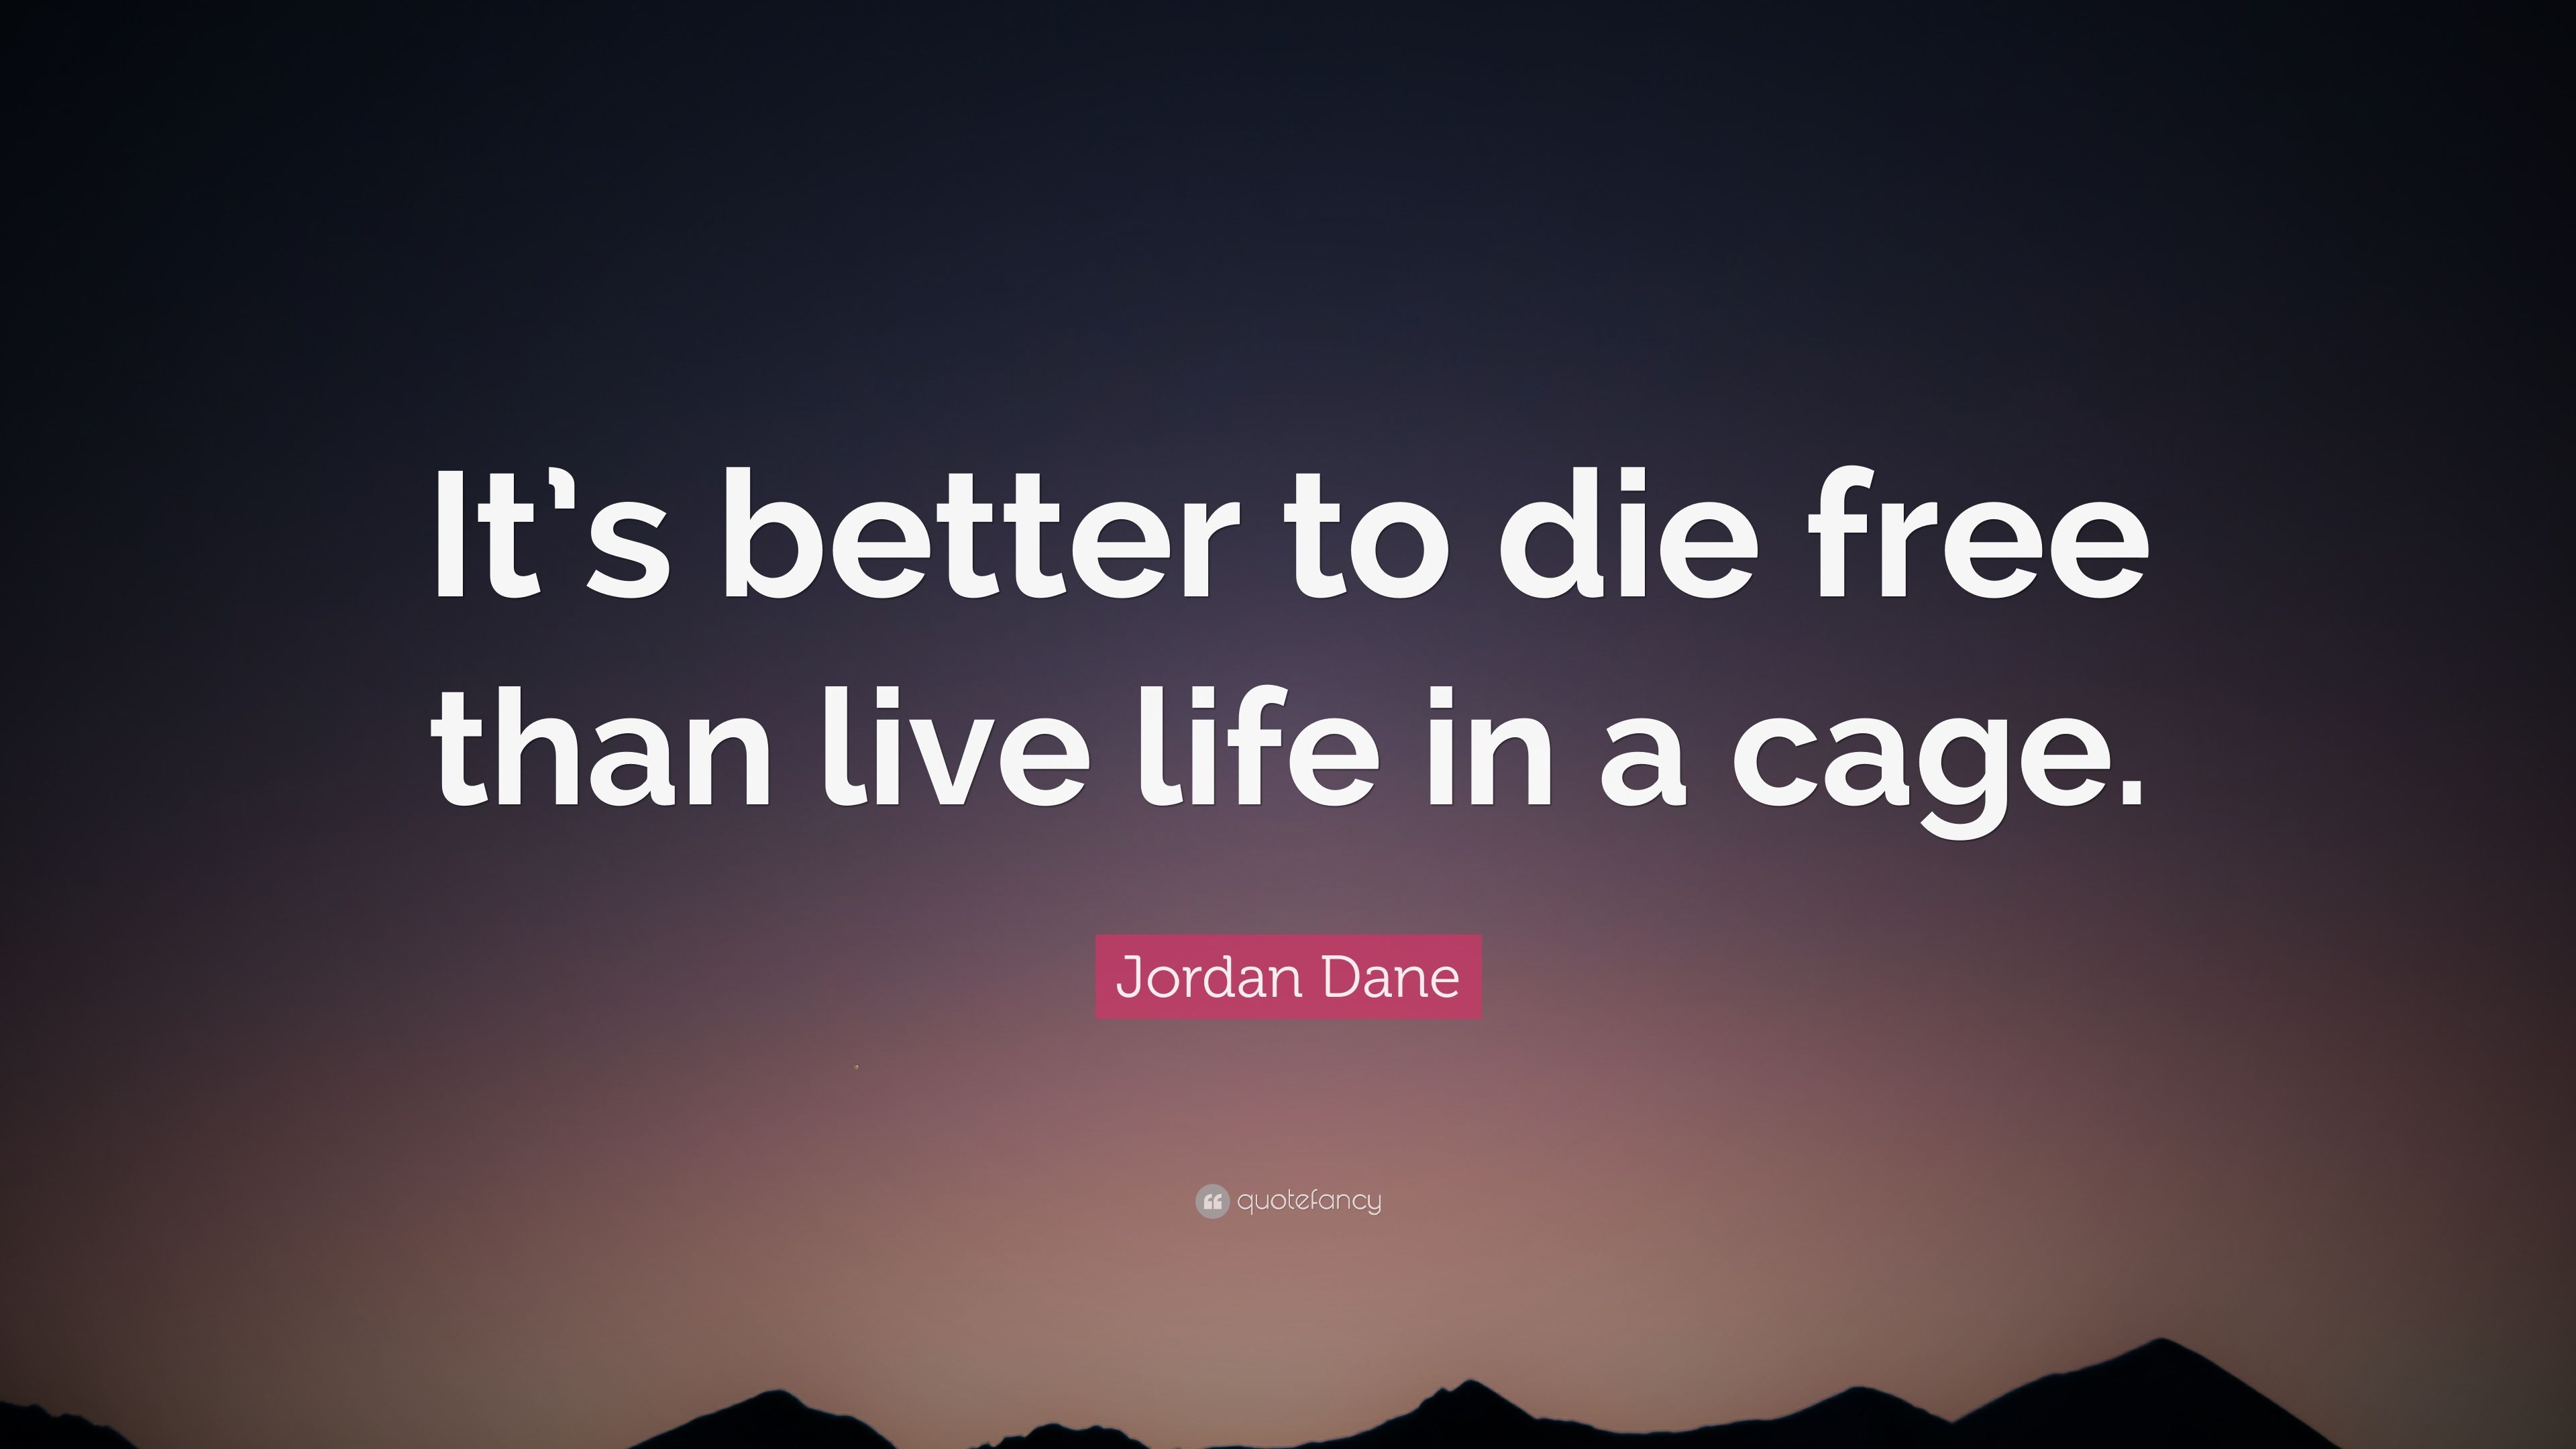 Jordan Dane Quote It S Better To Die Free Than Live Life In A Cage 7 Wallpapers Quotefancy